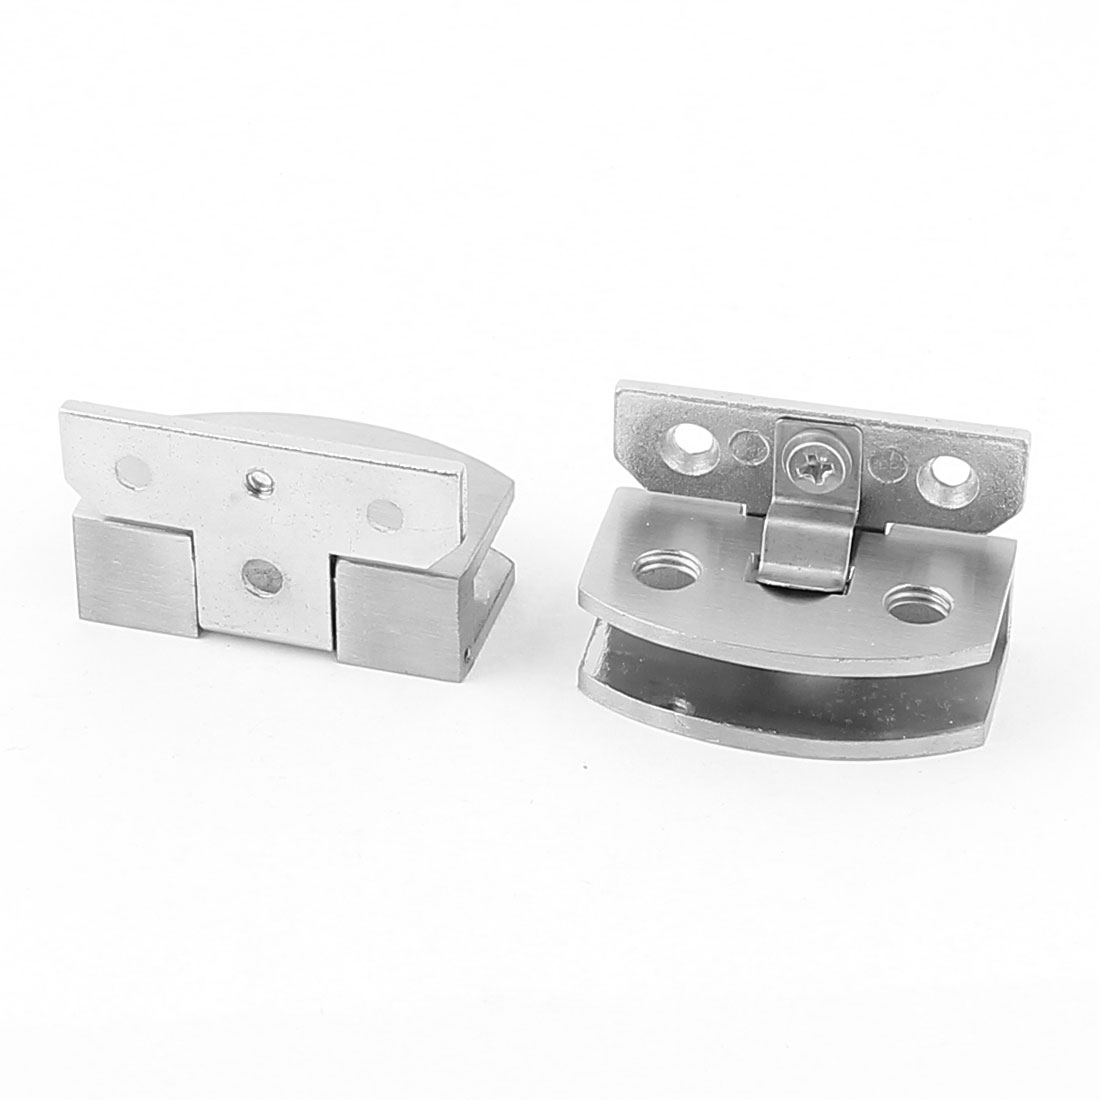 2 Pcs Silver Tone Metal Clip Clamp Holder for 5-8mm Thickness Glass